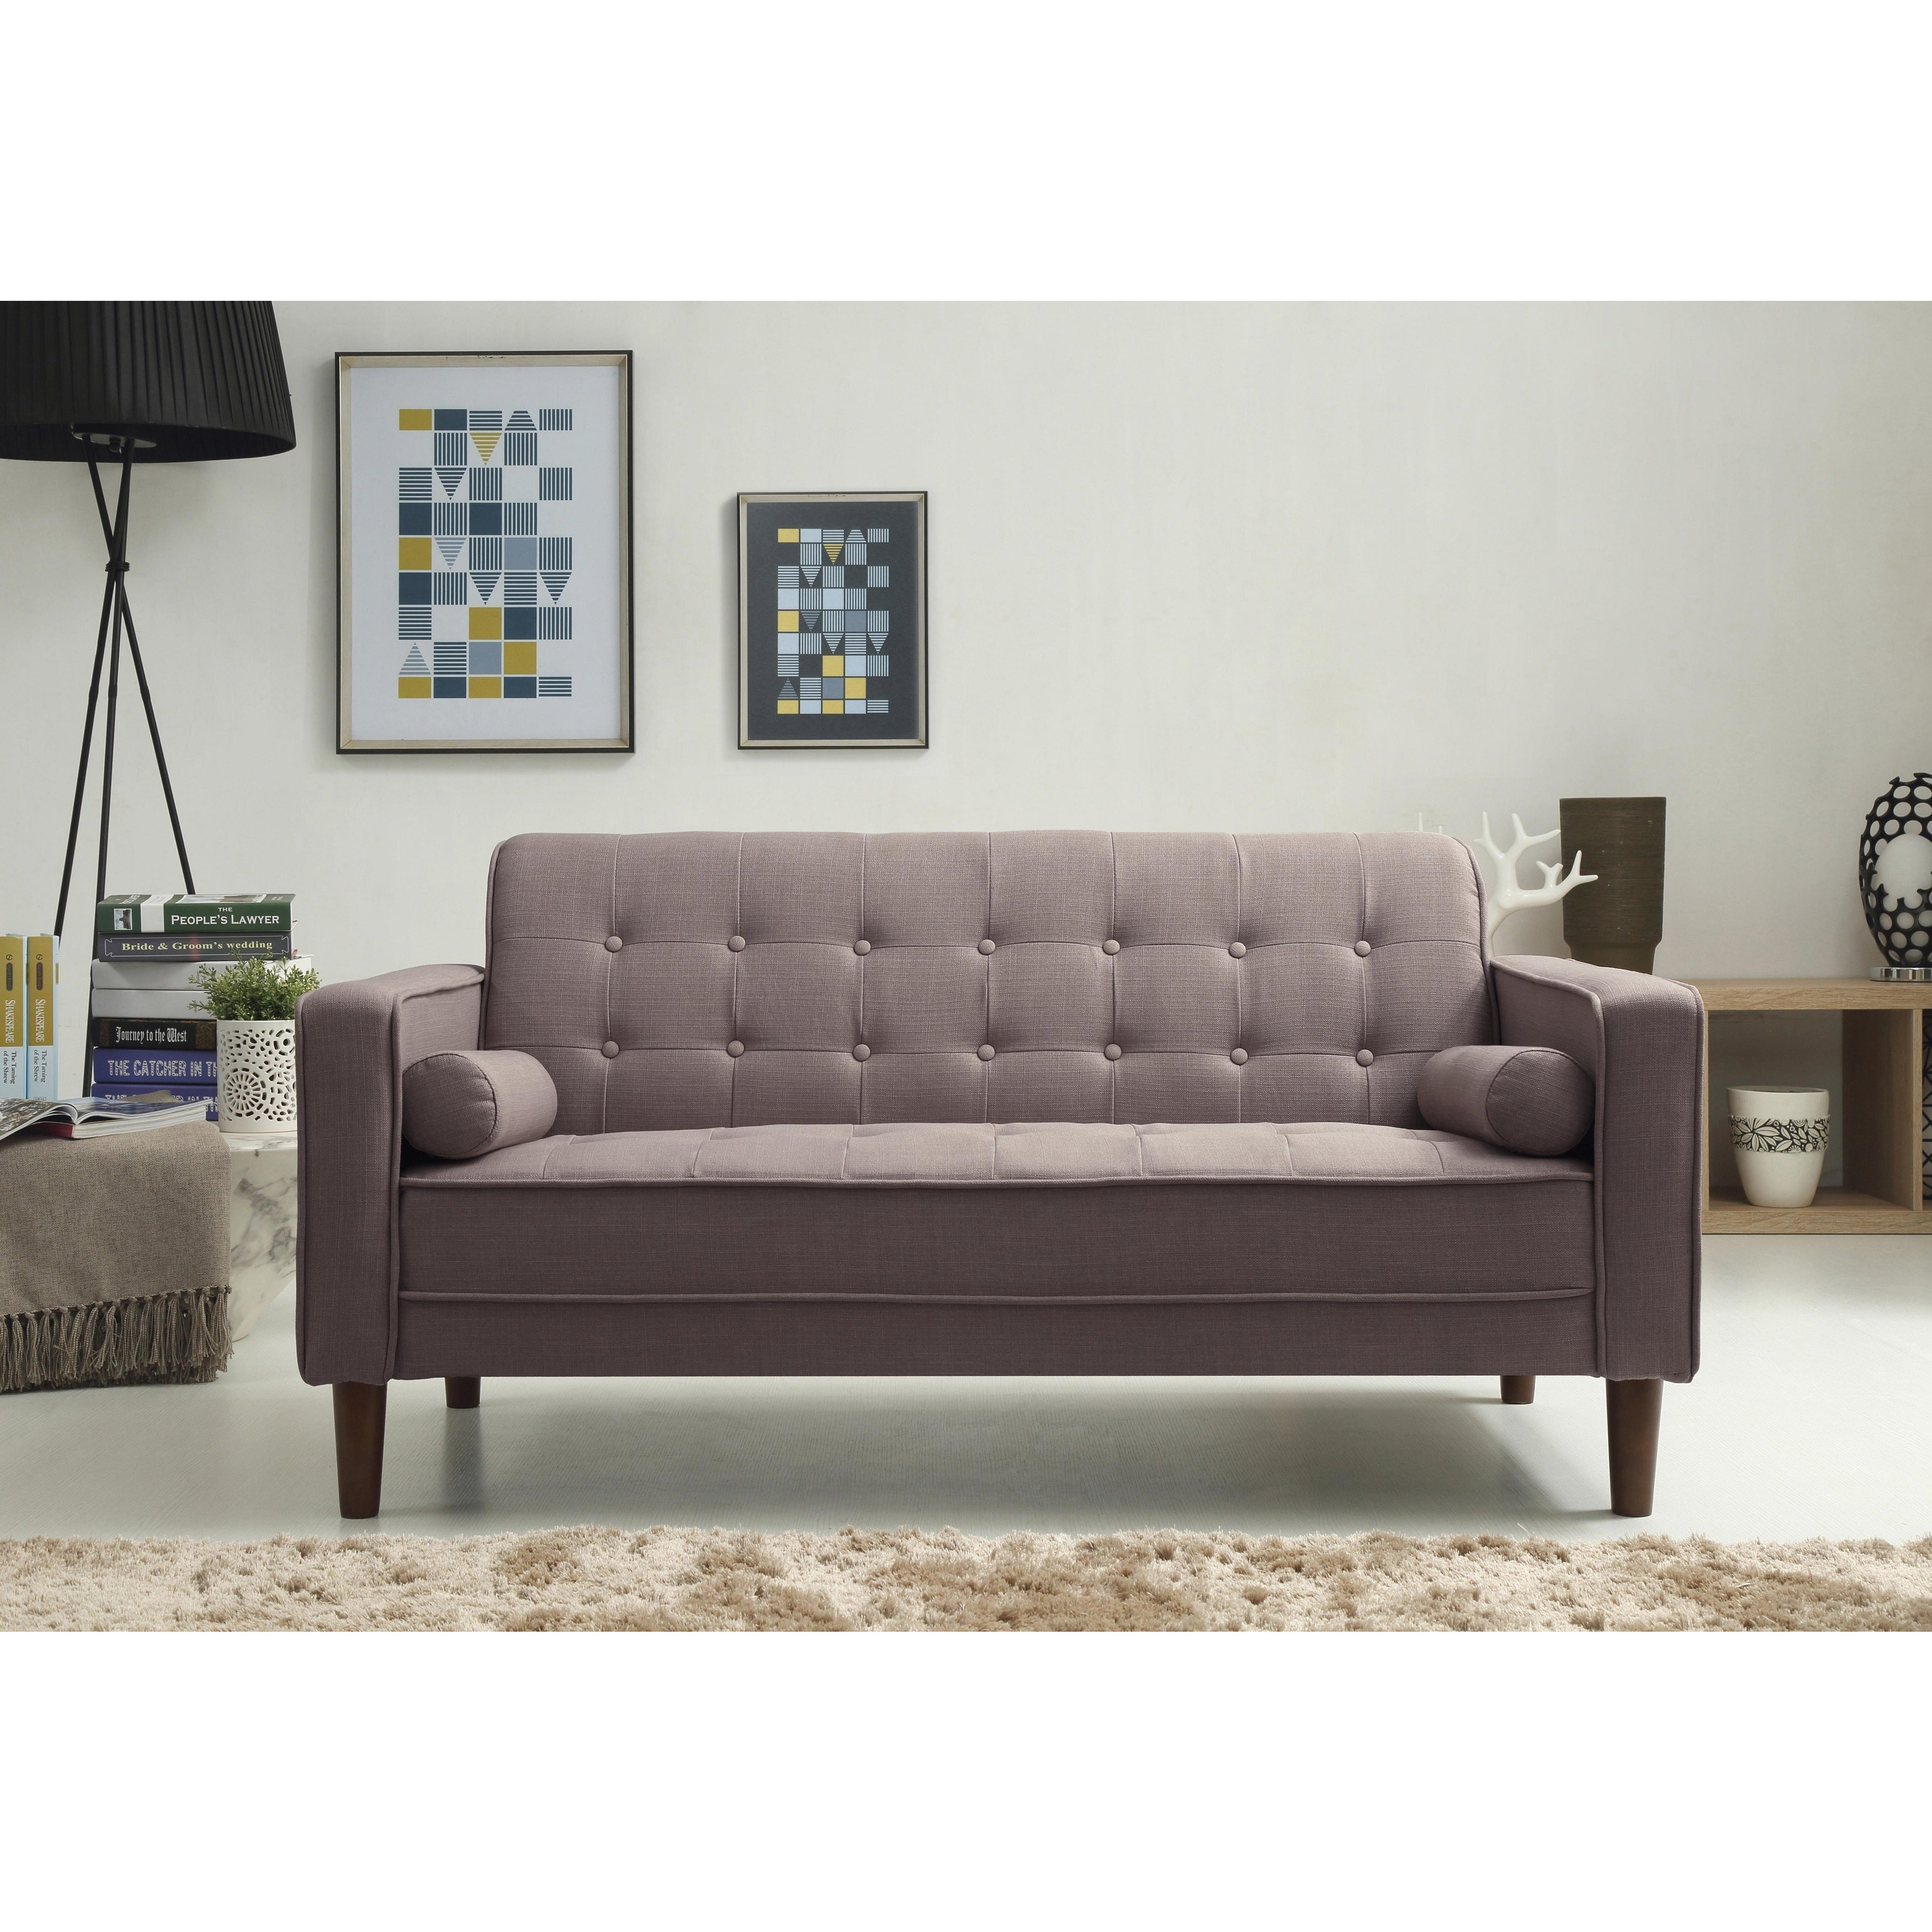 Charmant Shop Nathaniel Home Nolan Tufted Grey Linen Sofa   Free Shipping Today    Overstock.com   12443177